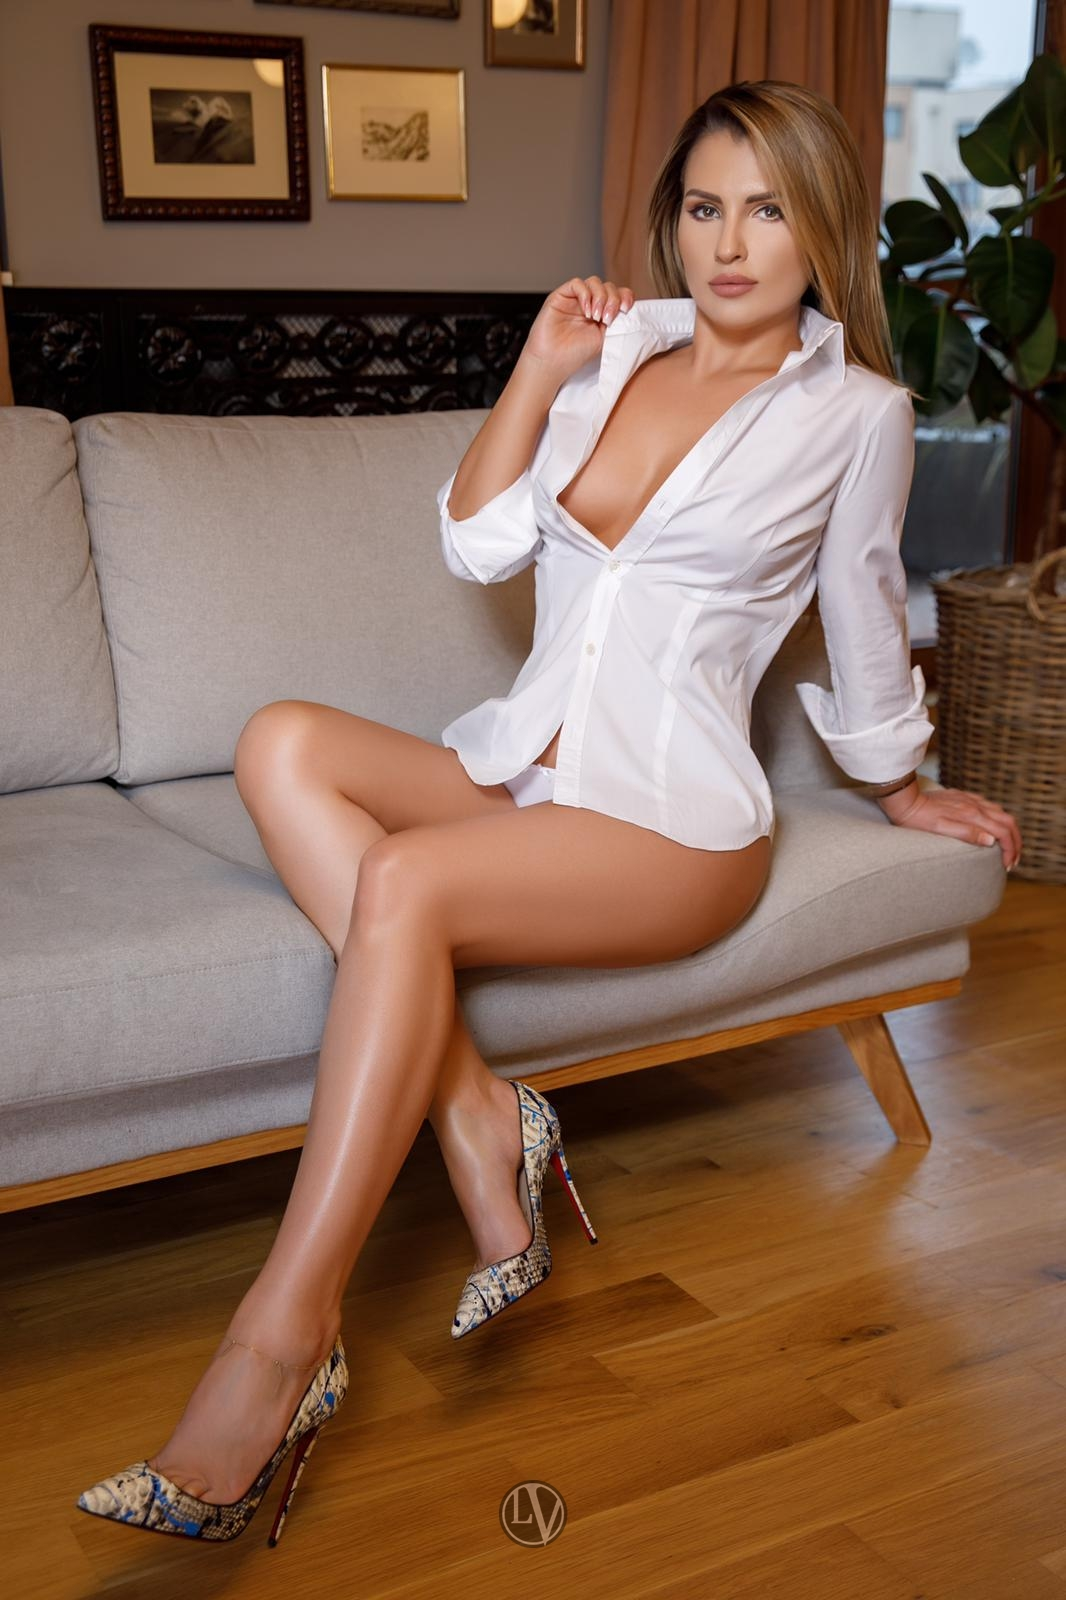 Escort June sitting on a grey sofa in a shirt and high heels